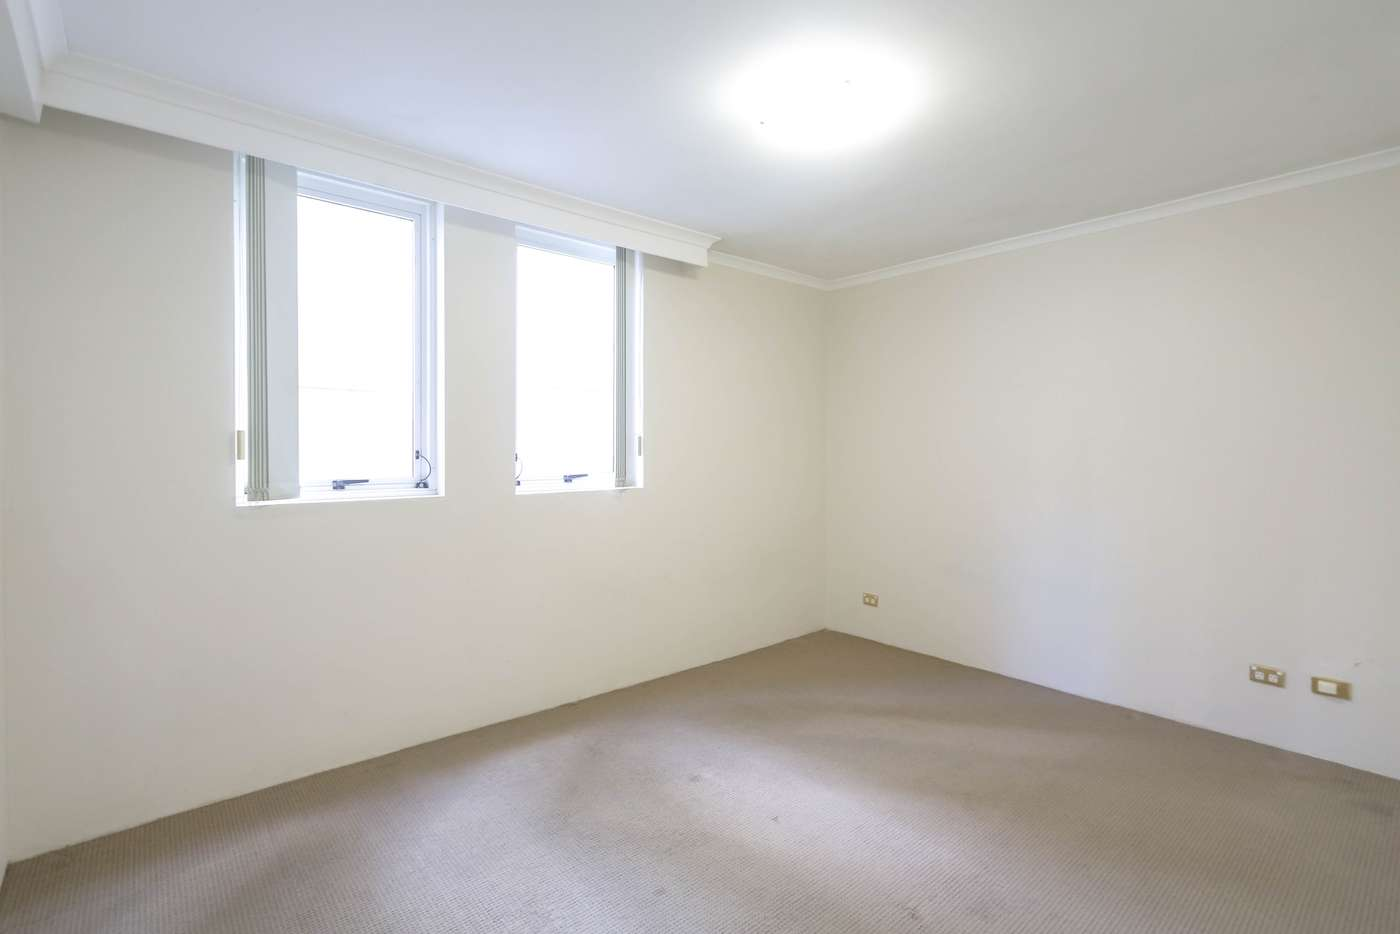 Sixth view of Homely apartment listing, 569 George Street, Sydney NSW 2000